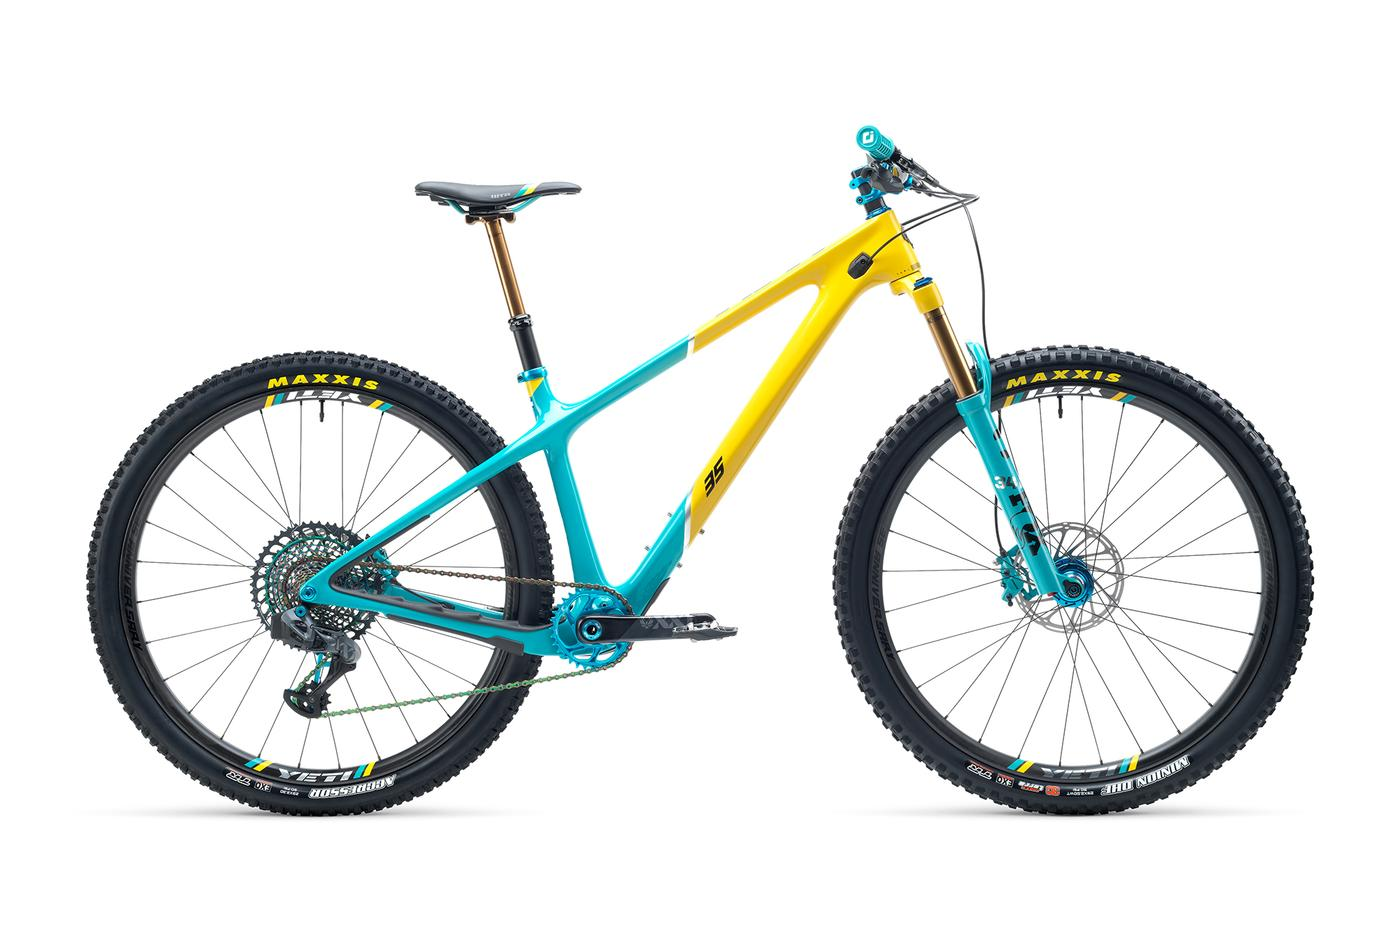 Limited to 100 Units: Yeti Cycles Announces the ARC 35th Anniversary Edition 29er Hardtail